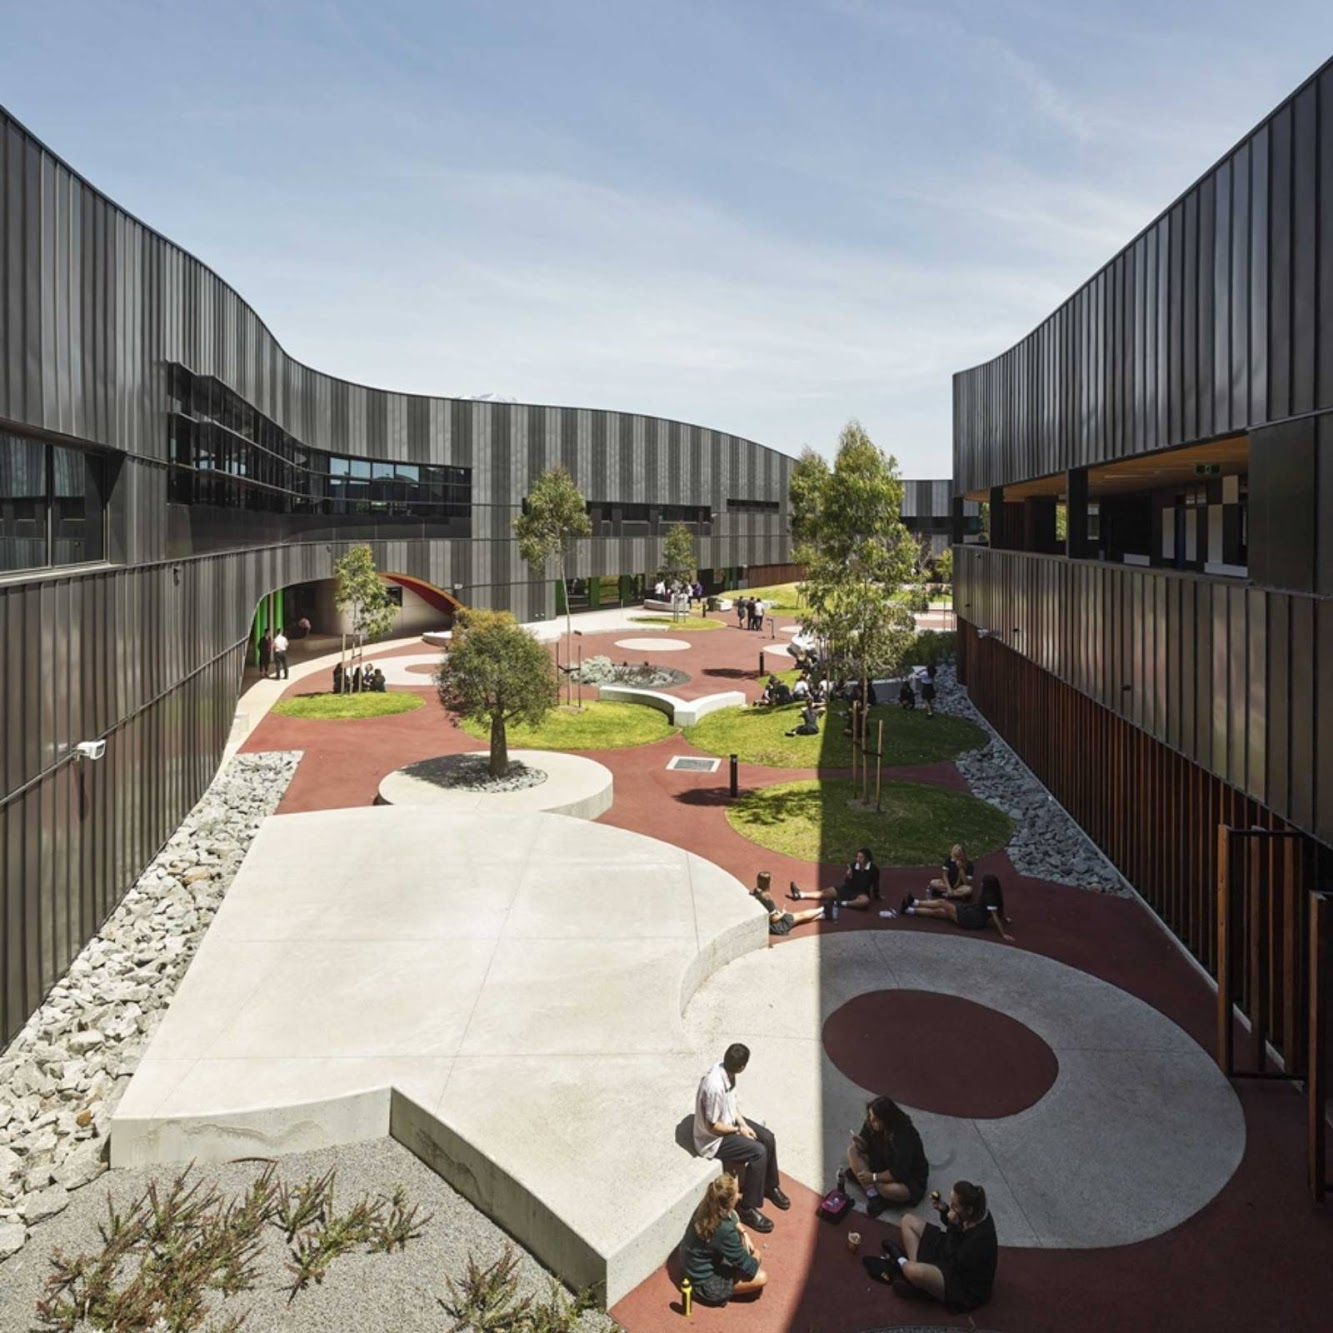 Los Angeles, California, Stati Uniti: Pegs Infinity Centre by Mcbride Charles Ryan Architects